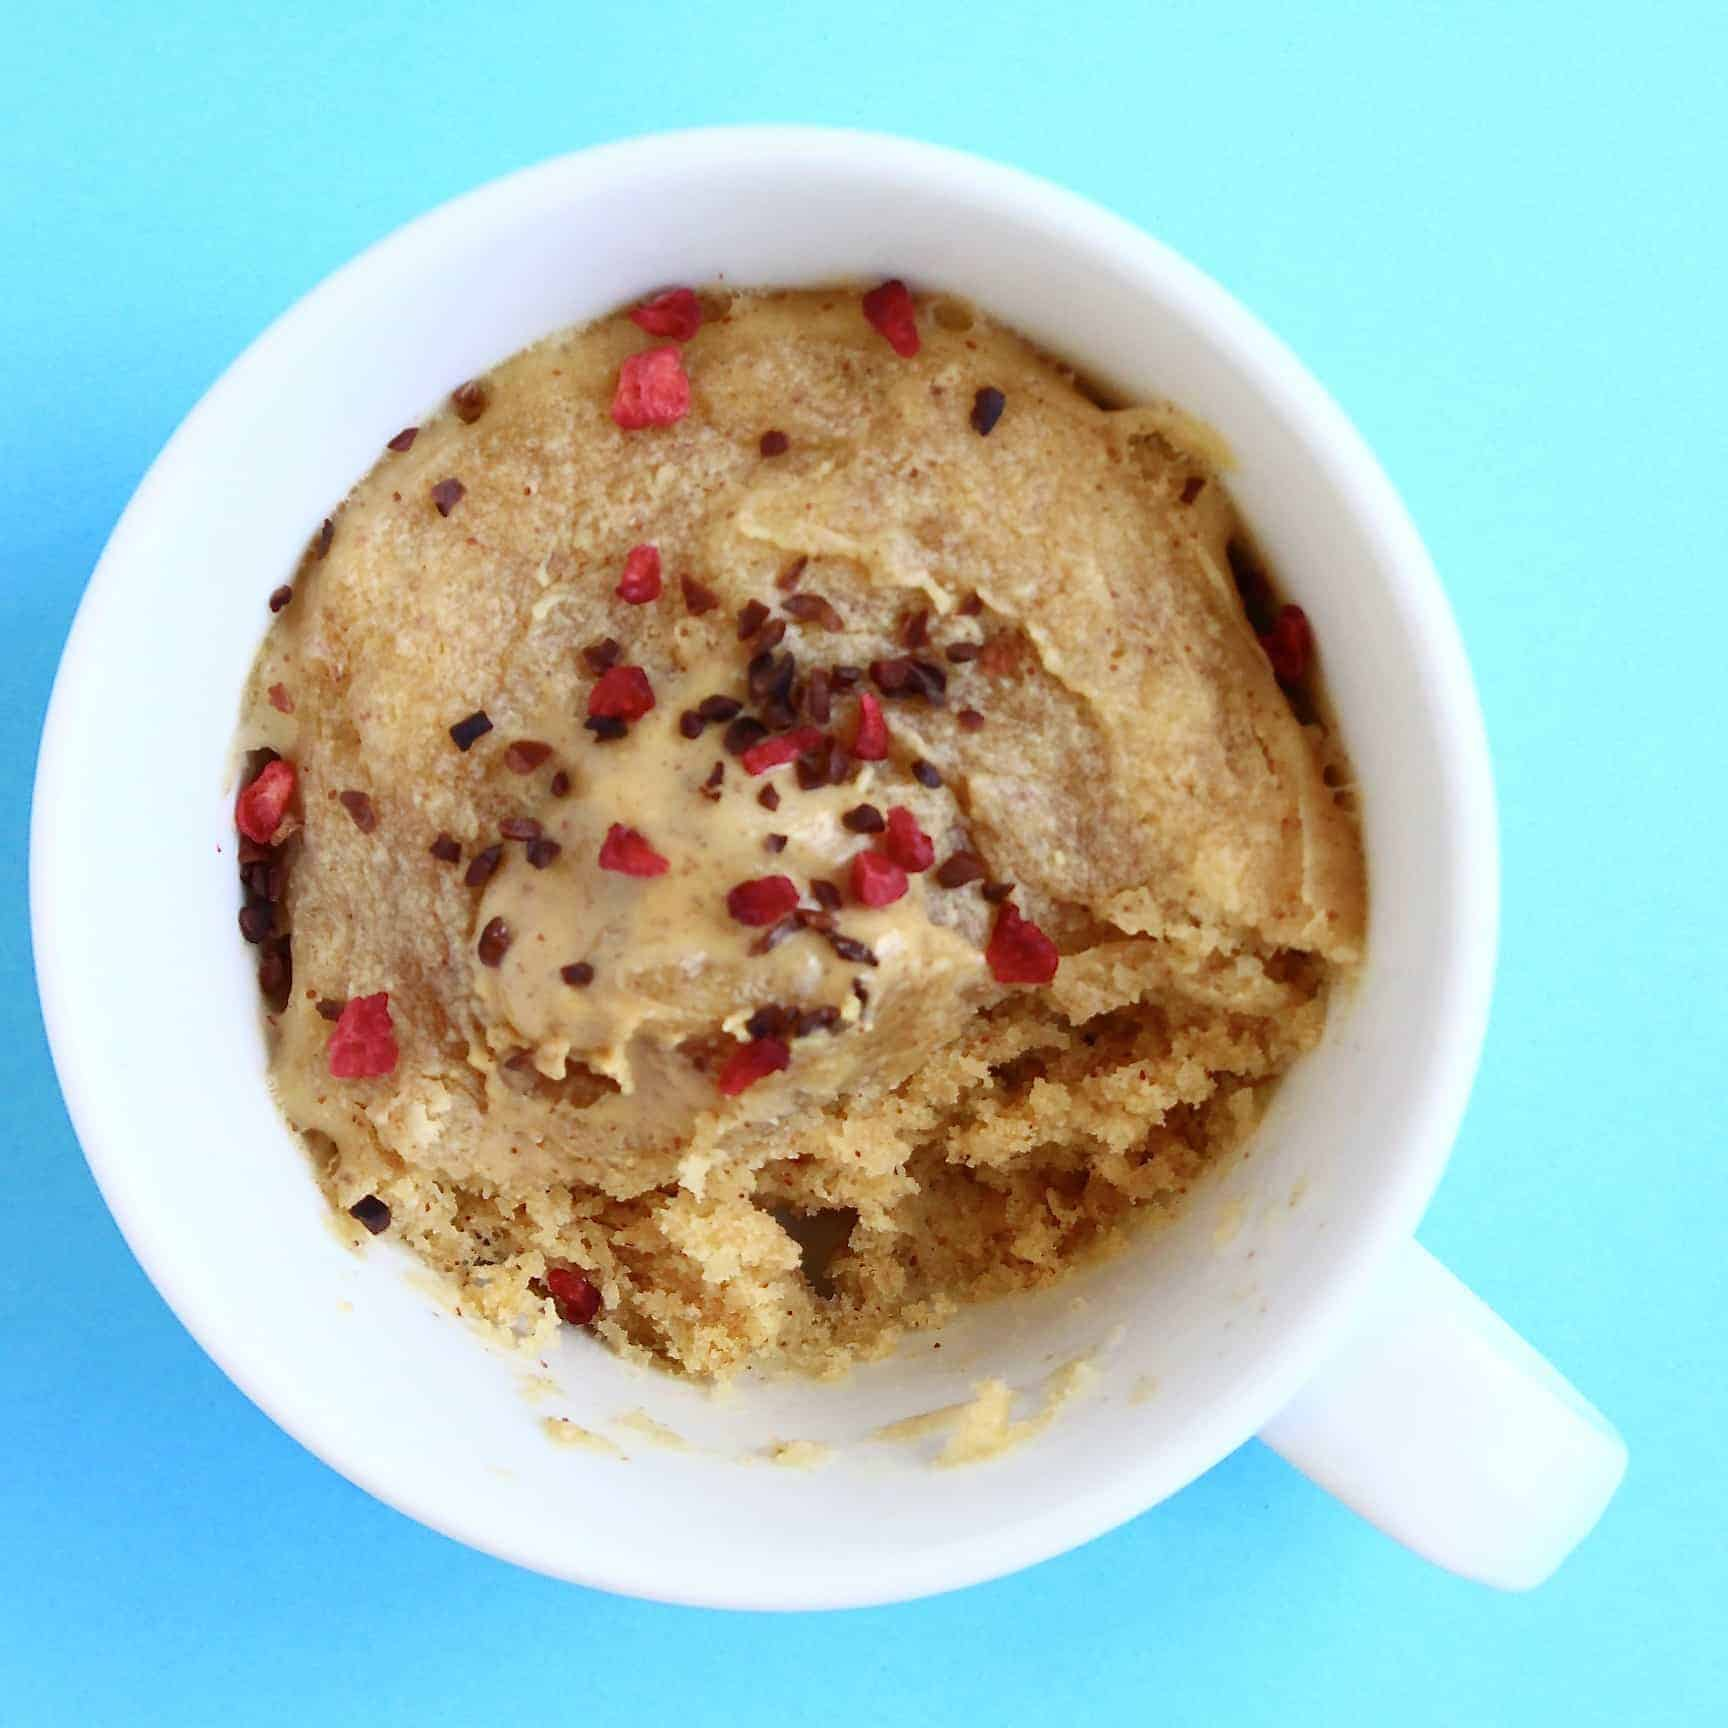 Vegan Peanut Butter Microwave Mug Cake 3-Ingredients